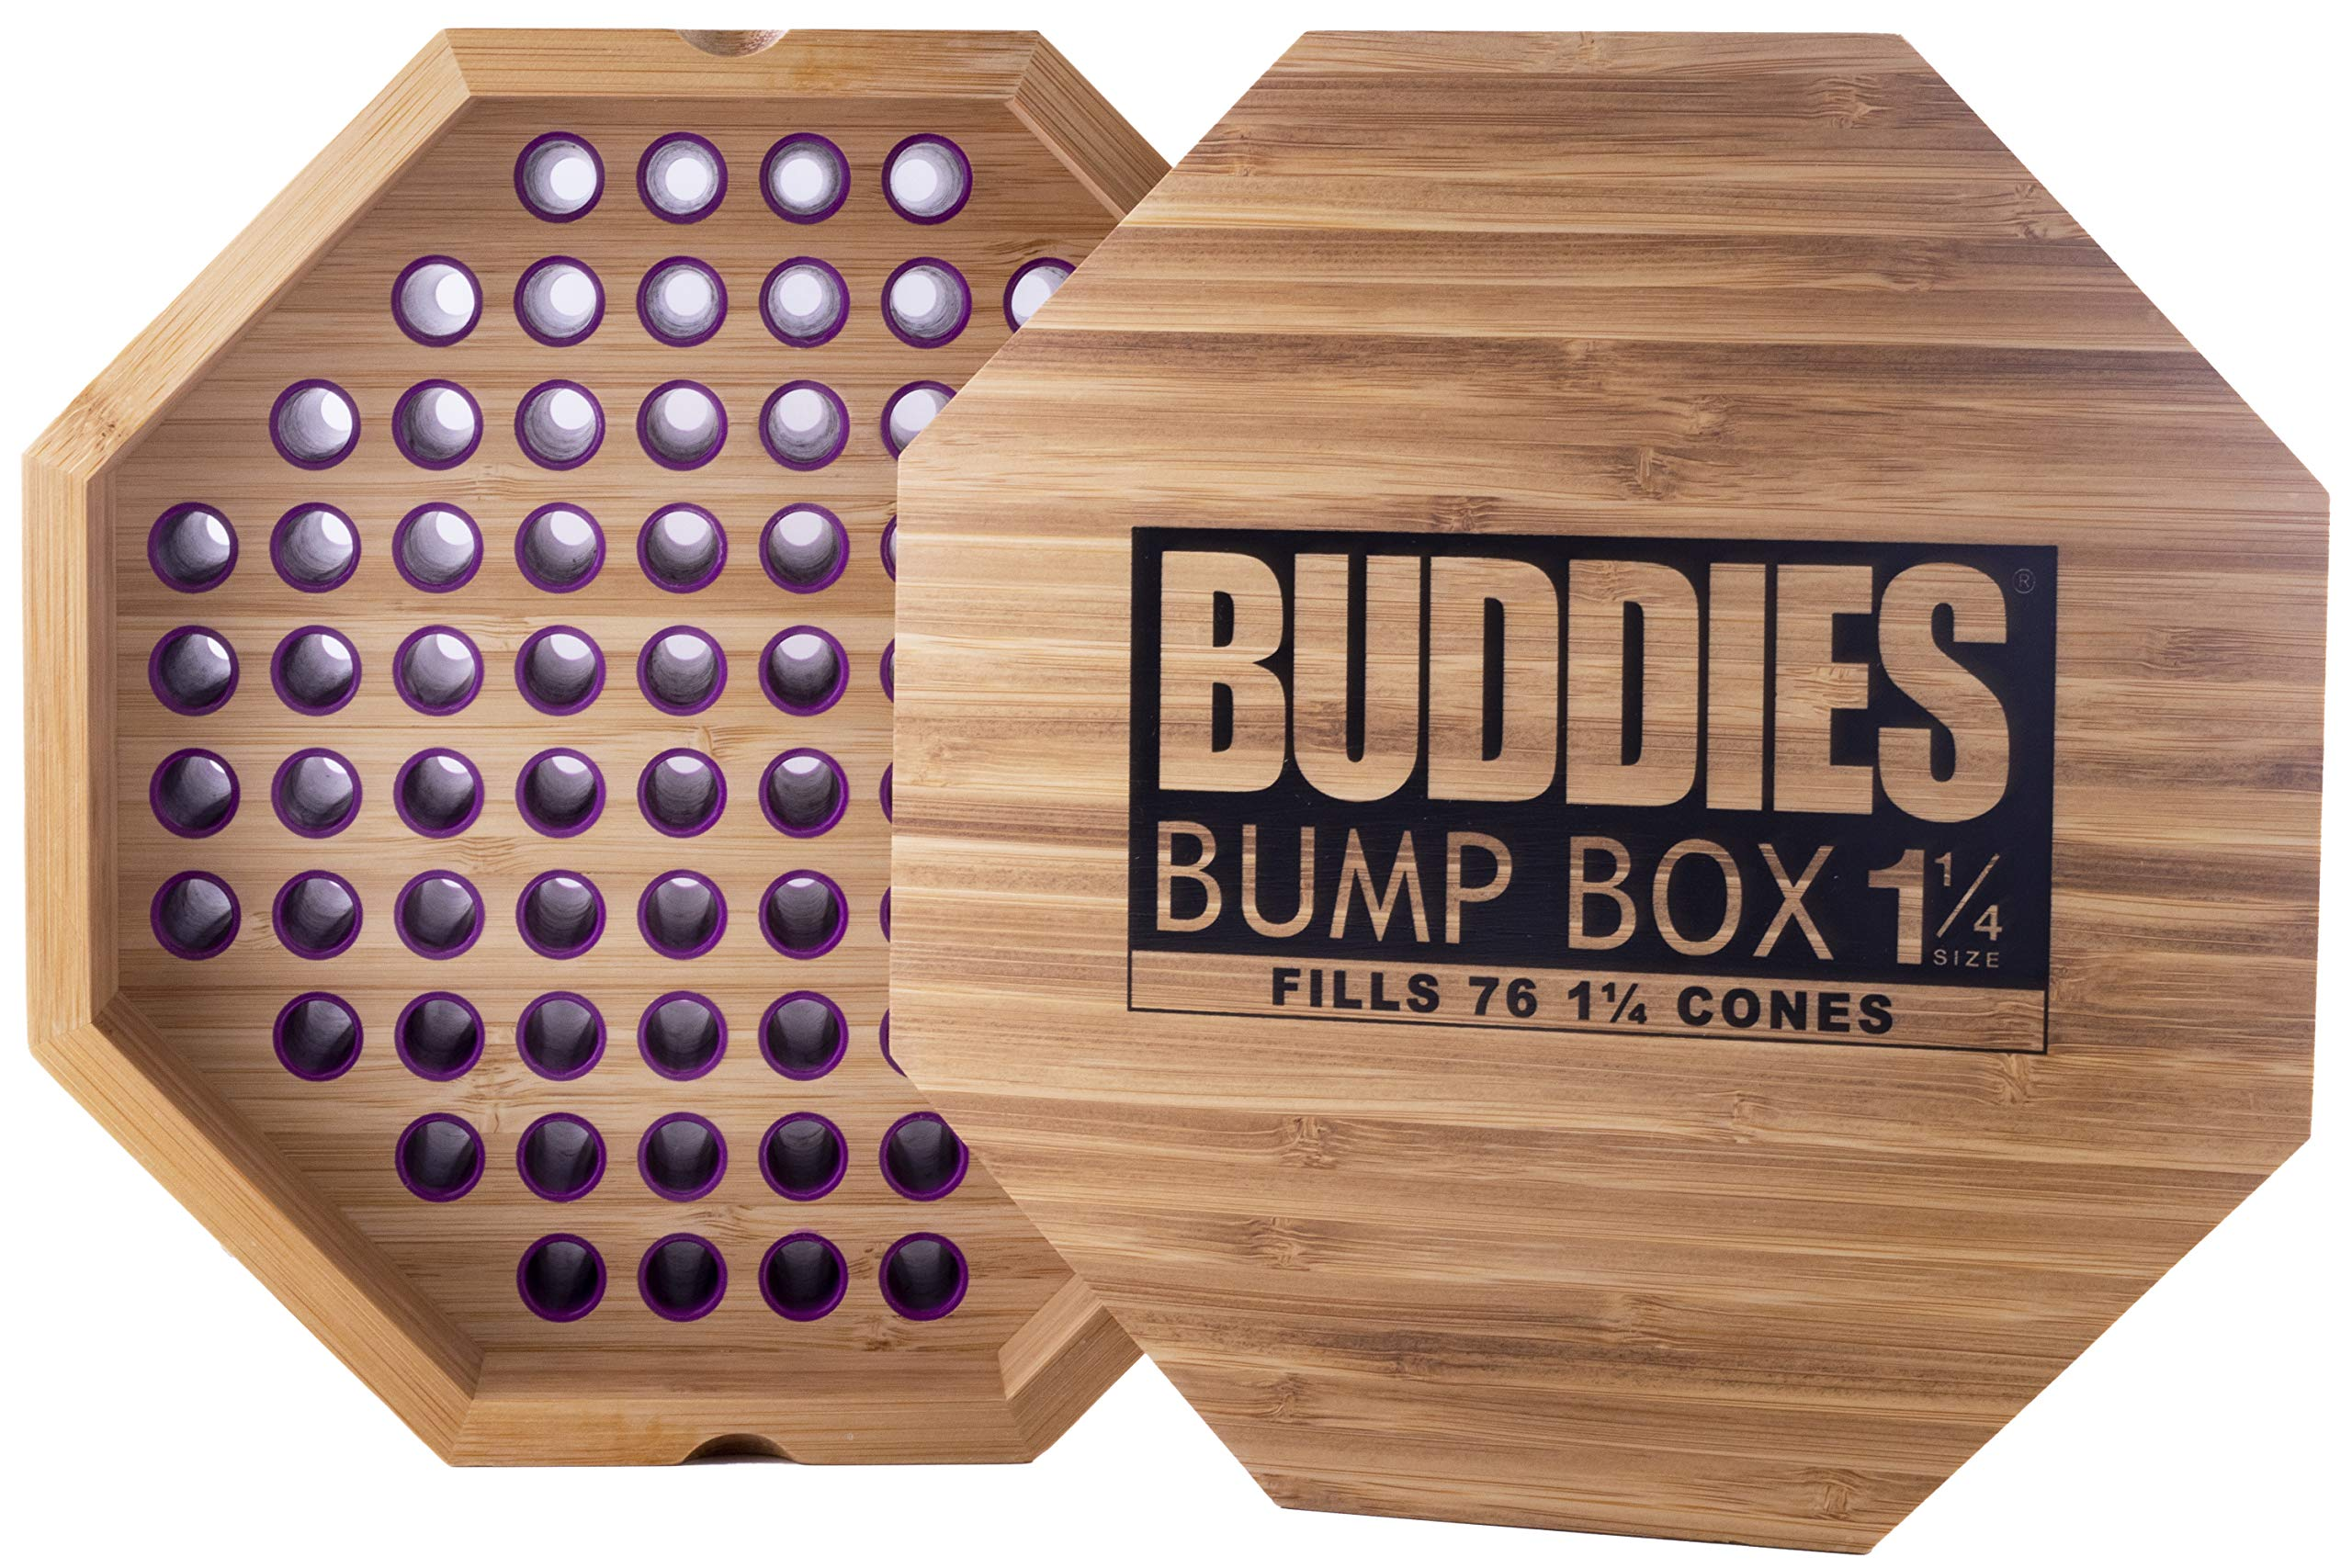 Buddies Bump Box Filler for 1 1/4 Size Cones - Fills 76 Cones Simultaneously by Buddies